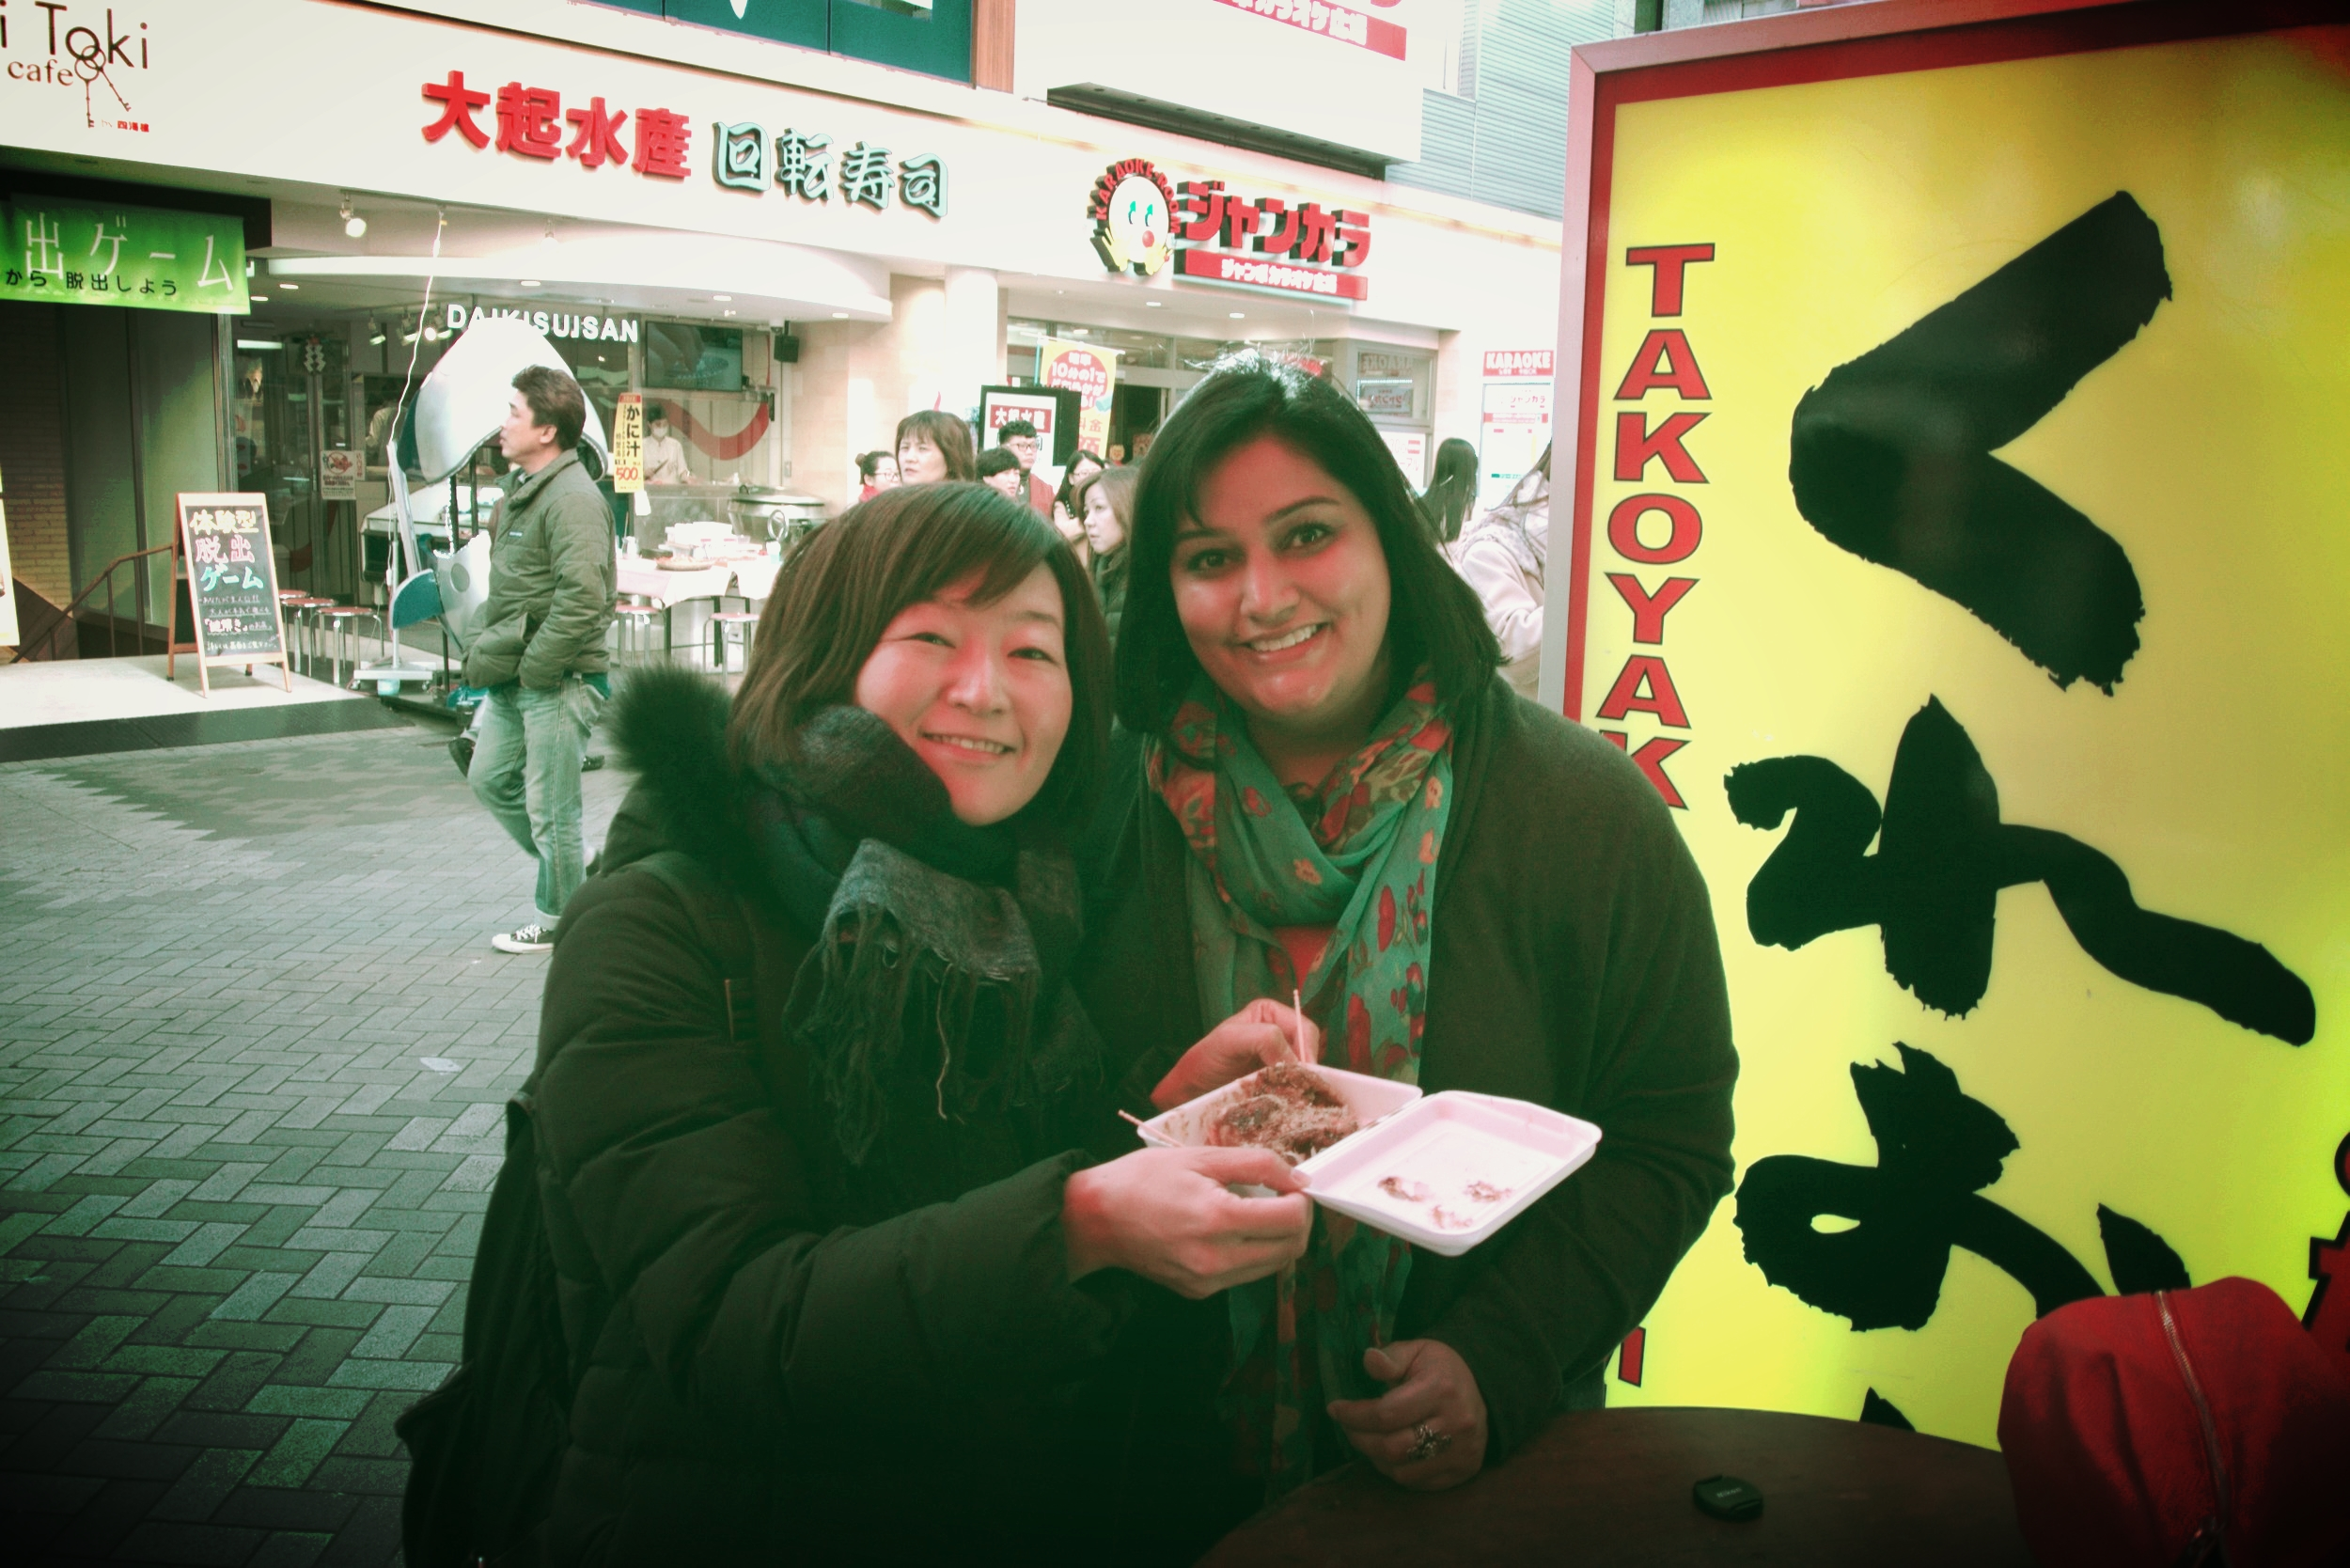 Ryoko introducing my first taste of Takoyaki!  Deliciousness!